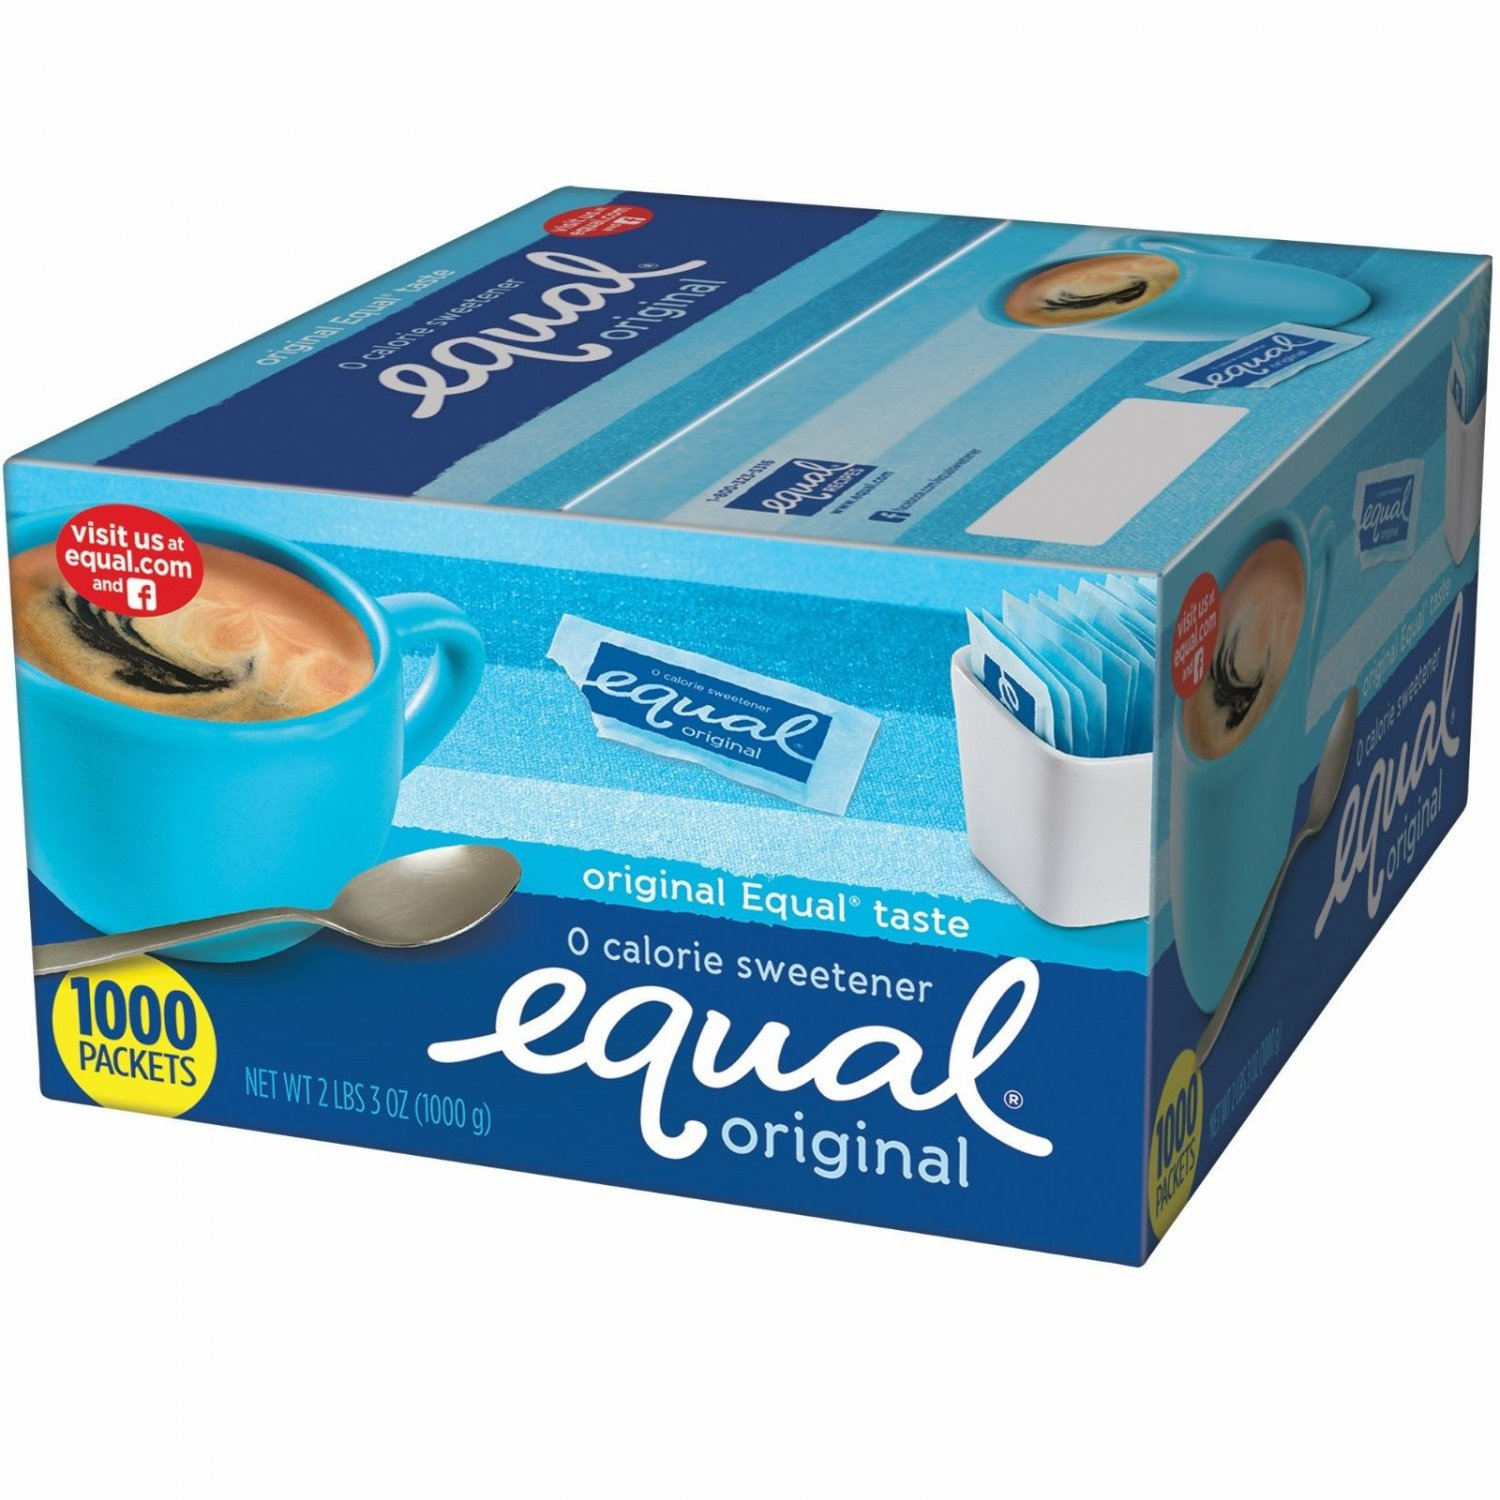 Equal 0 Calorie Sweetener, 2 lbs., 3 oz., 1,000 Packets